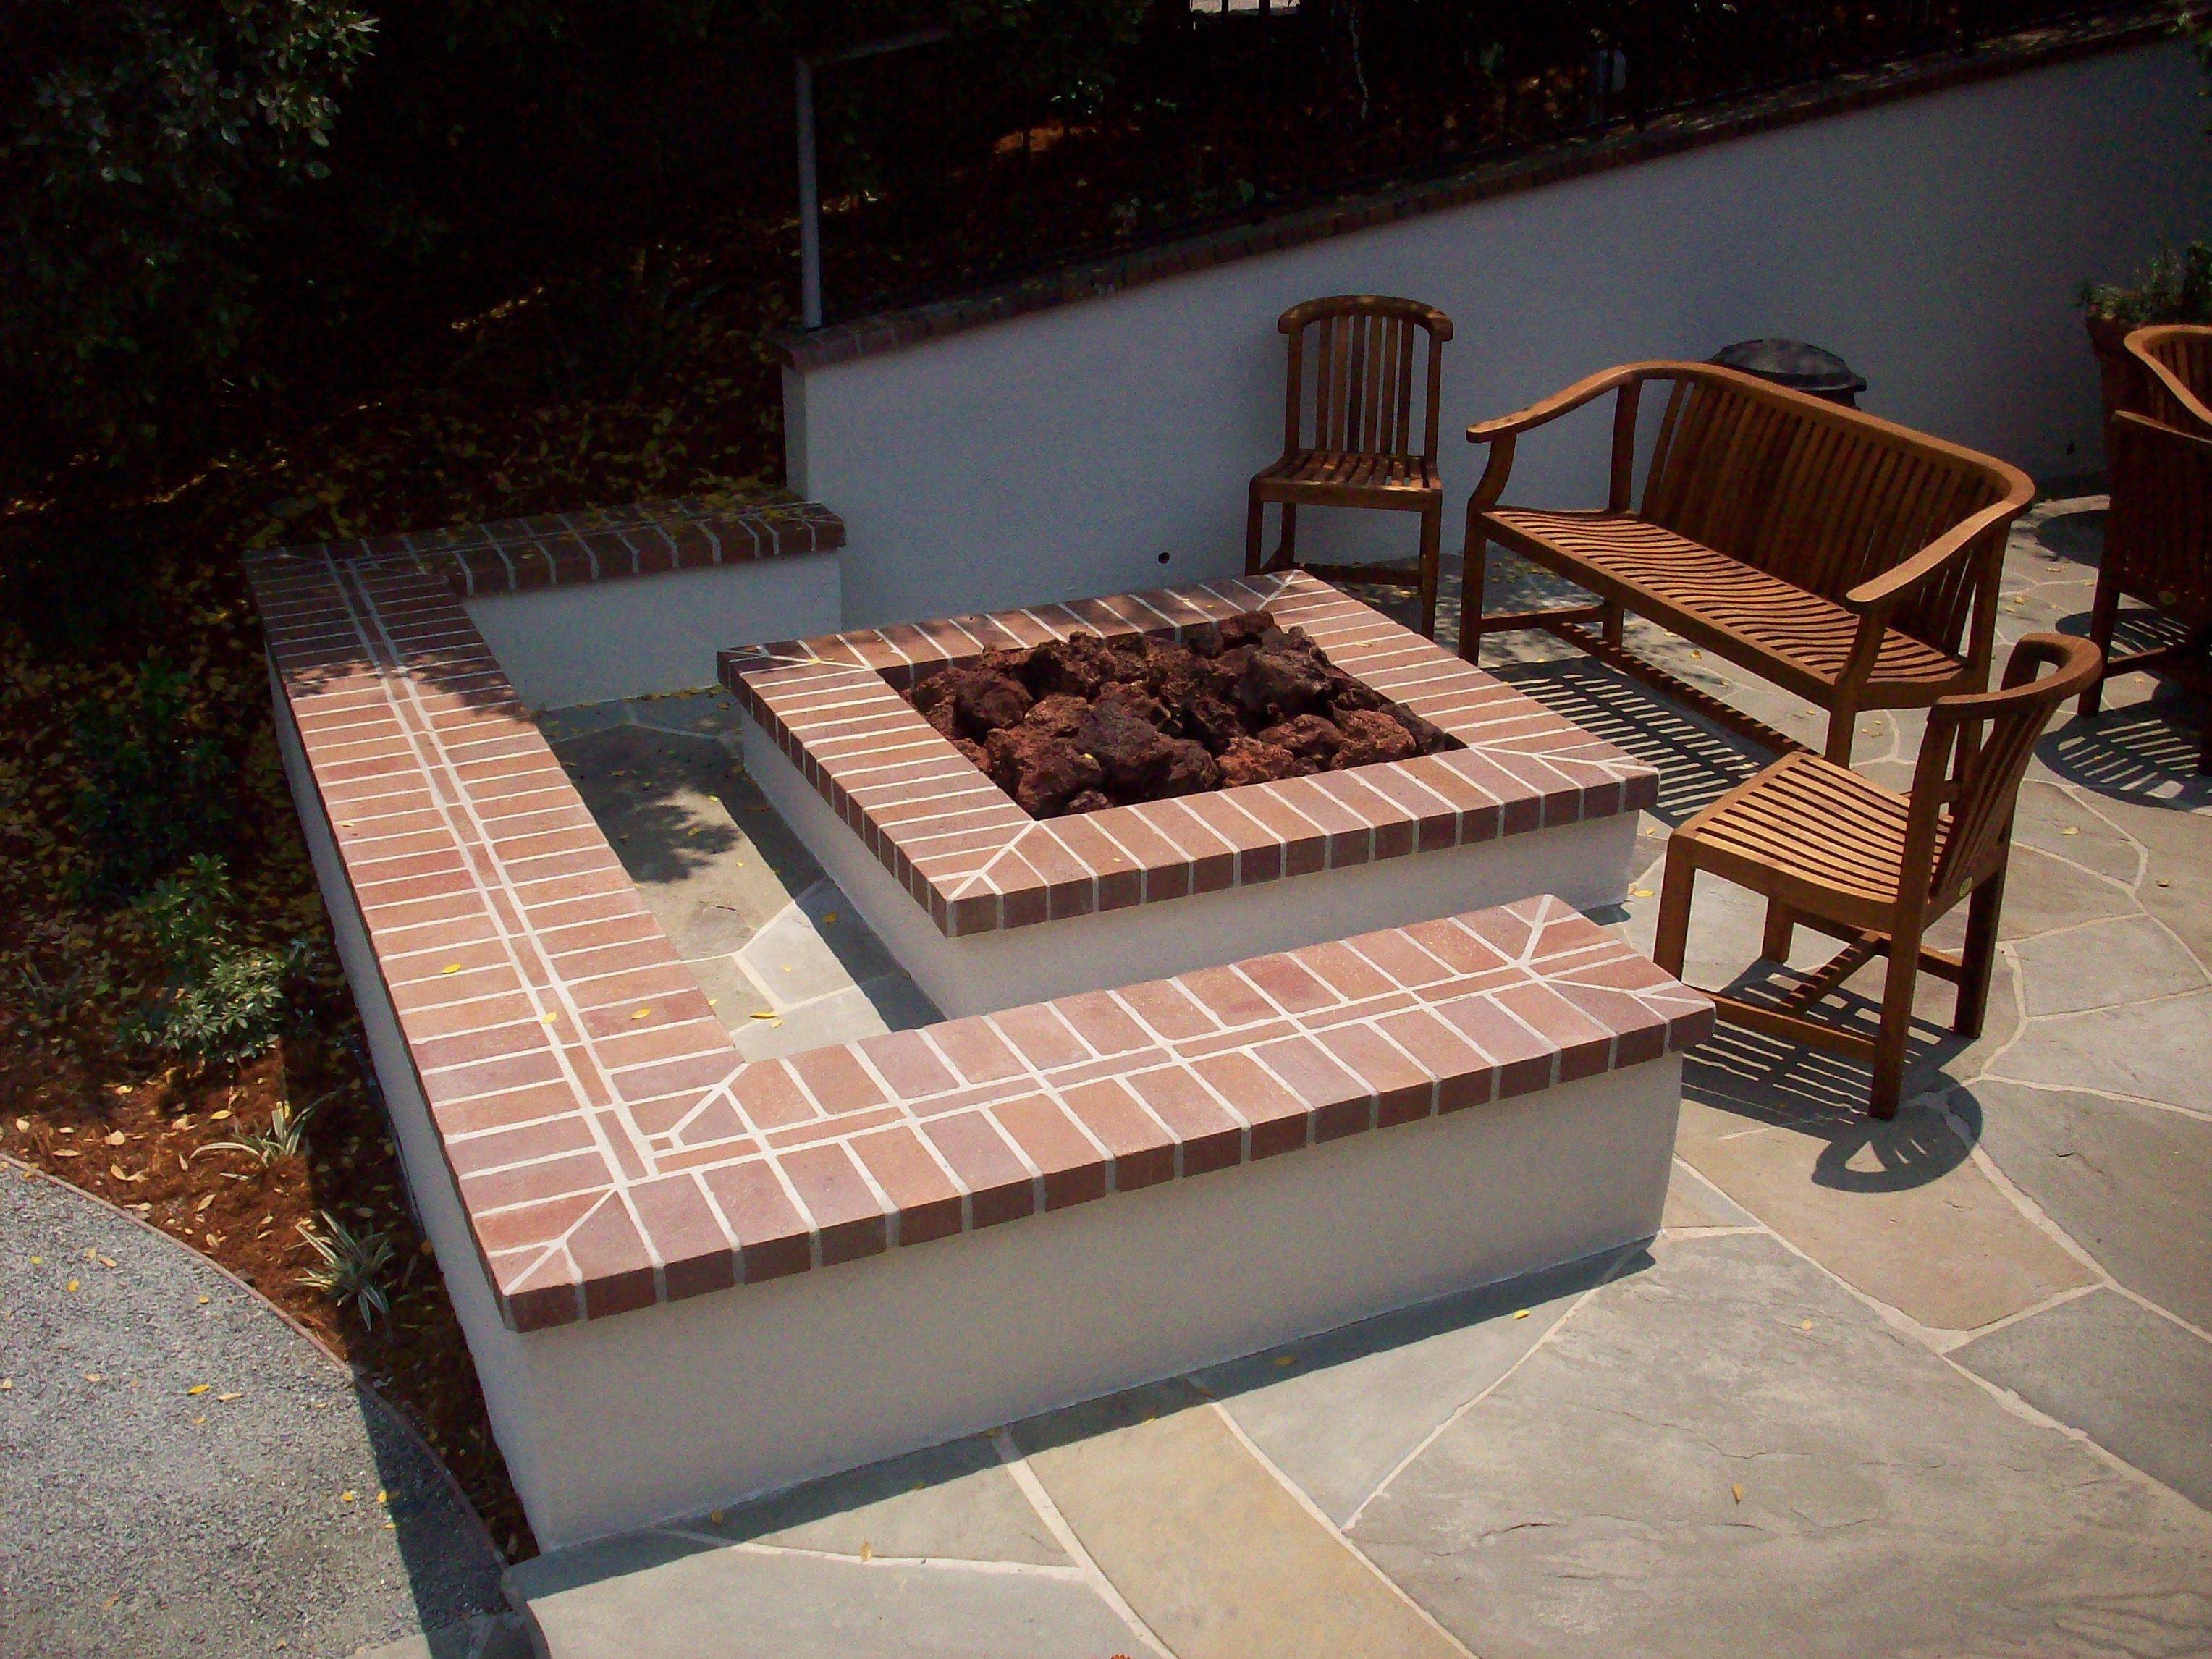 Backyard Ideas With Bricks : Facts About Brick Fire Pit Ideas Backyard Brick Fire Pit Ideas